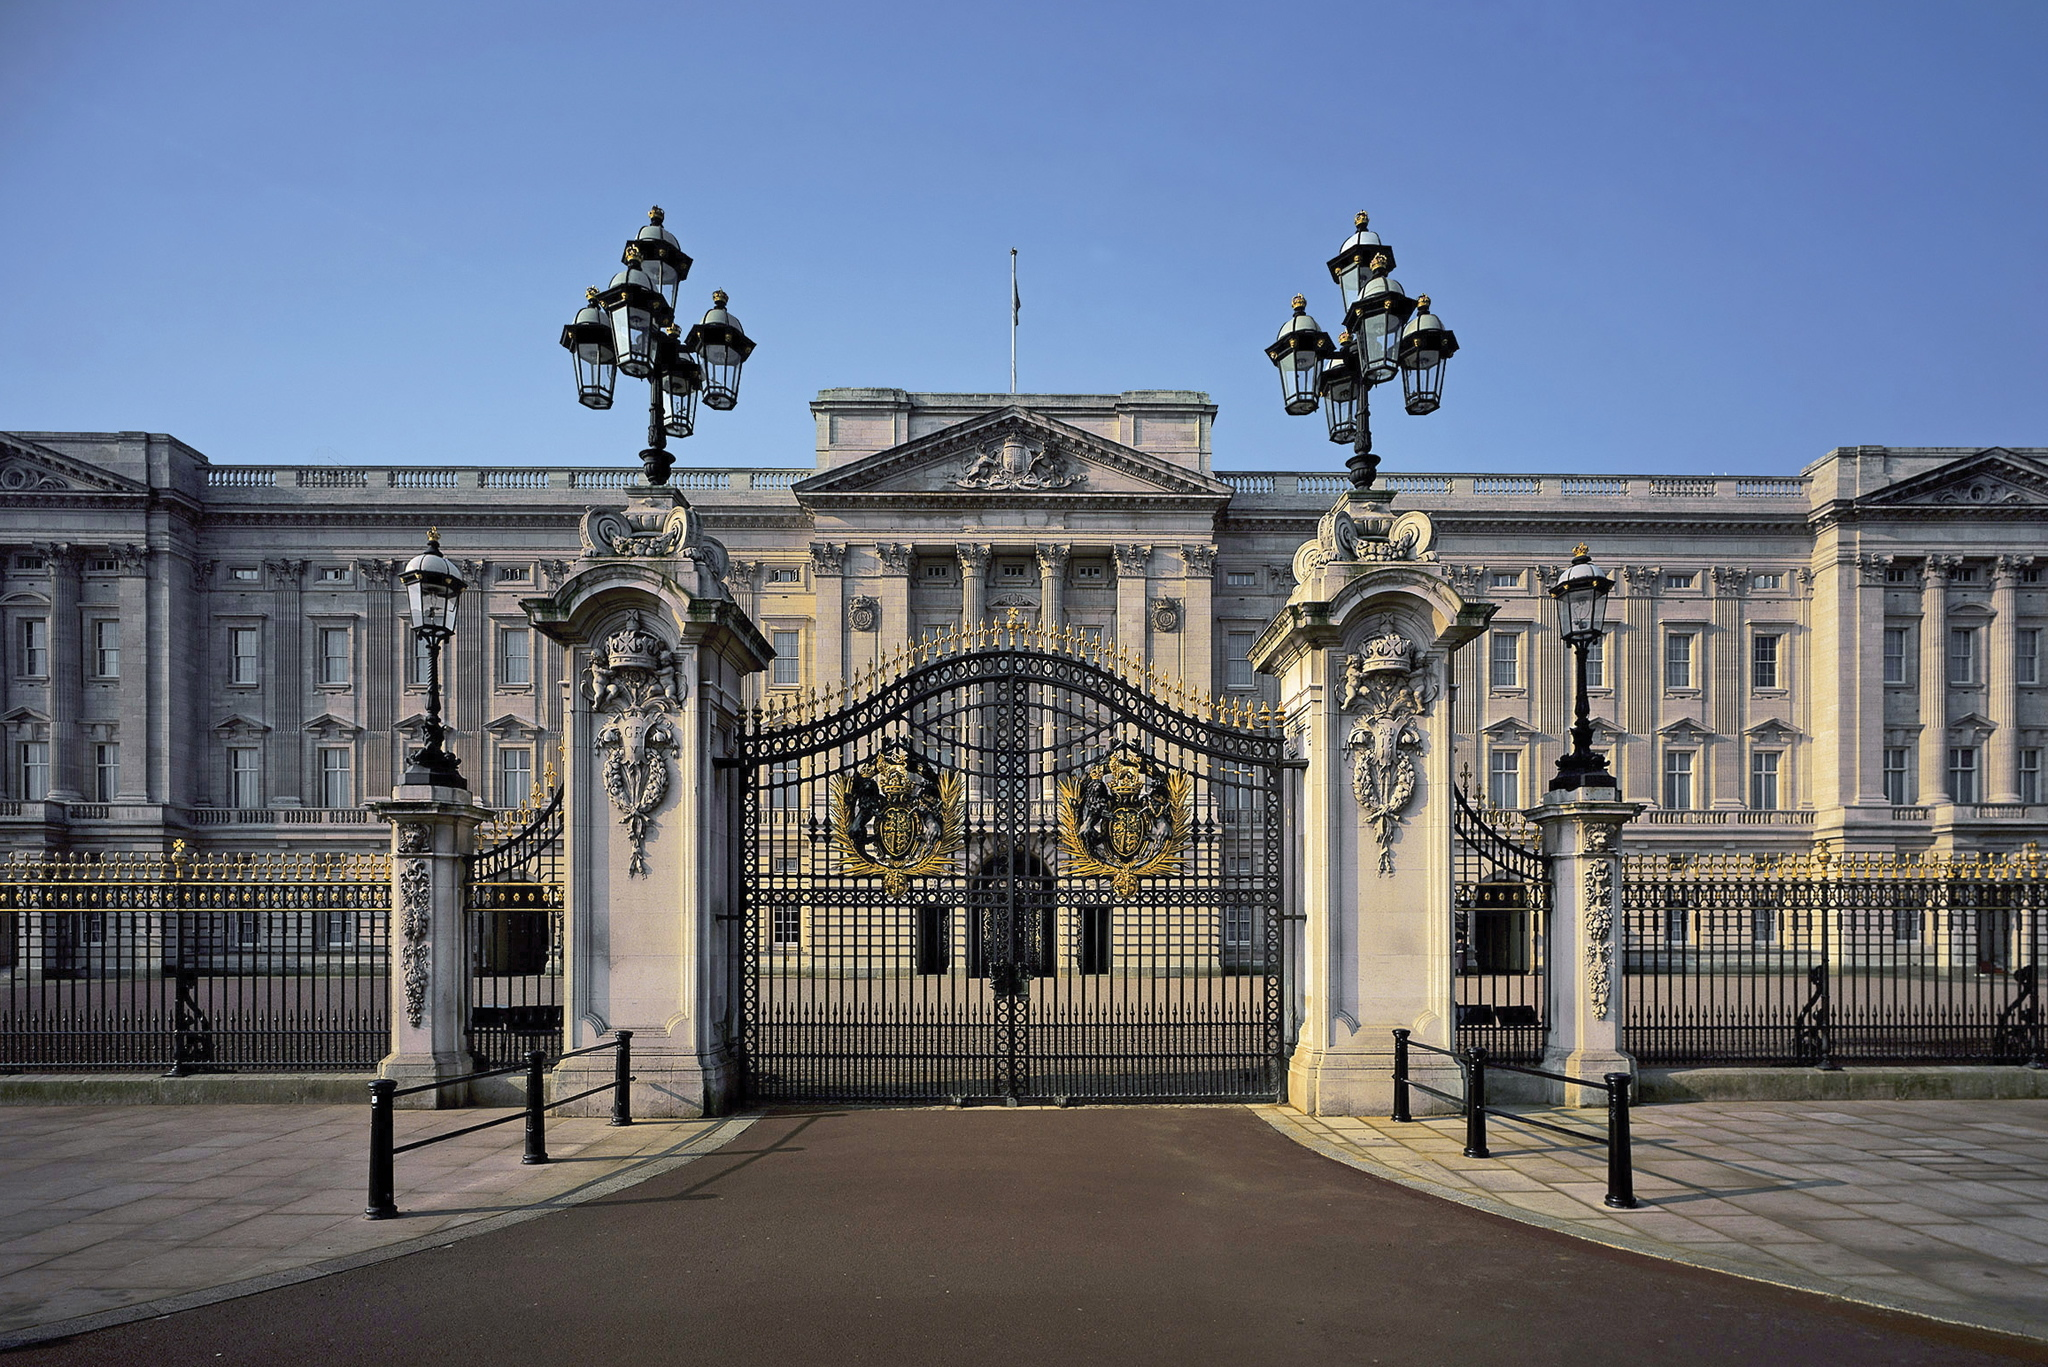 Five things you might not know about Buckingham Palace